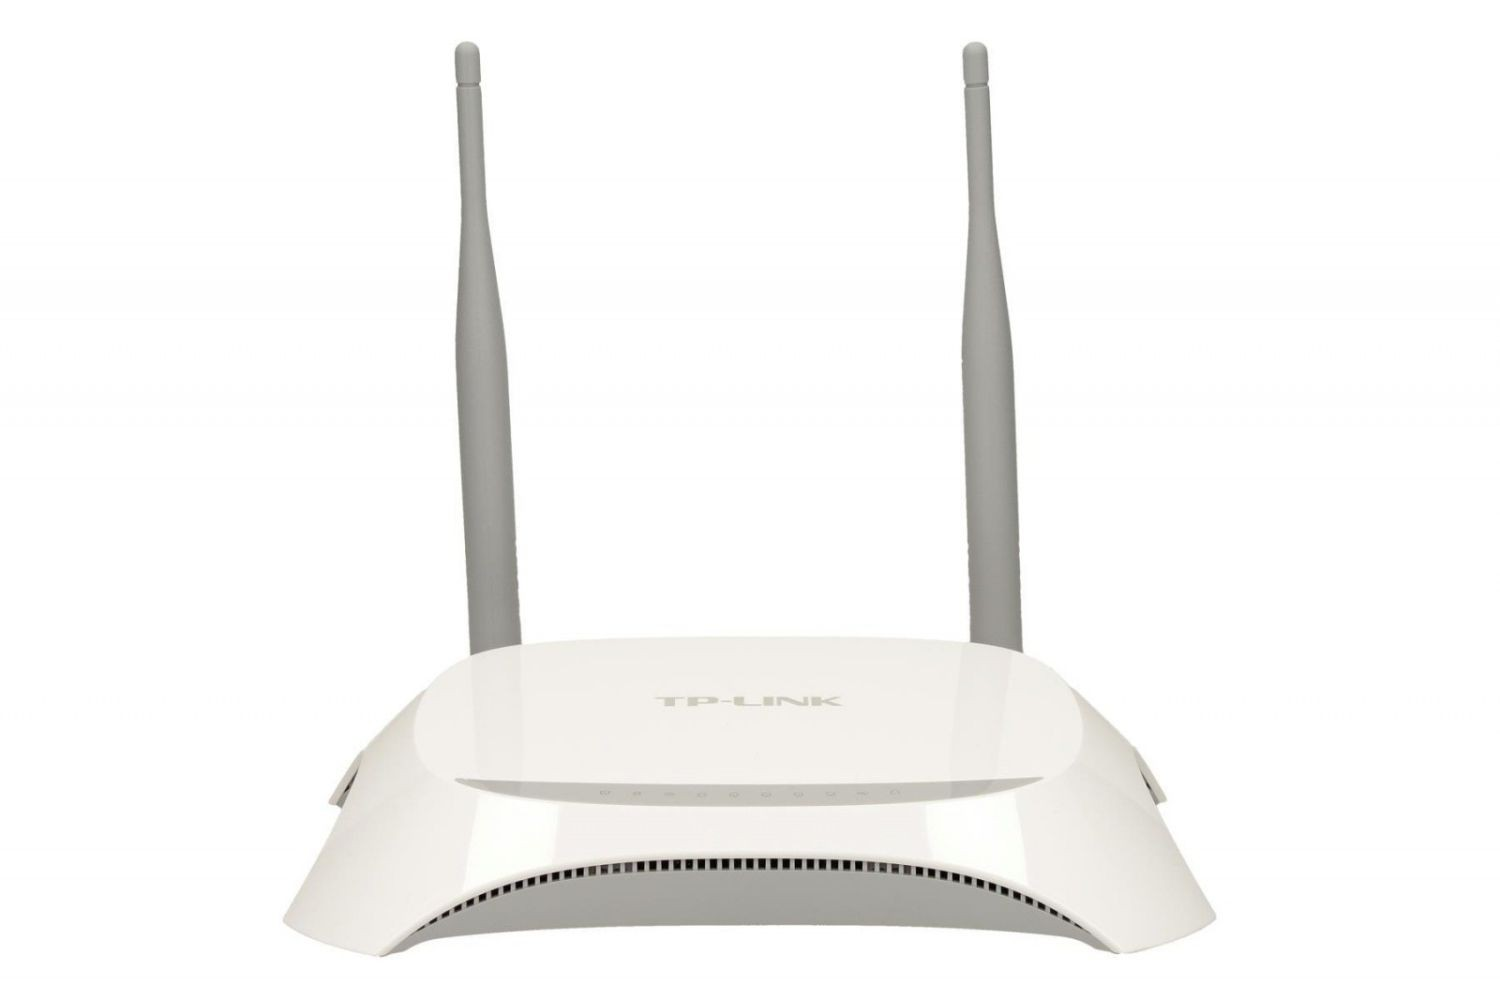 TP-Link TL-MR3420 Wireless N300 2T2R 3G/4G router (4xLAN, 1xWAN, 1xUSB)